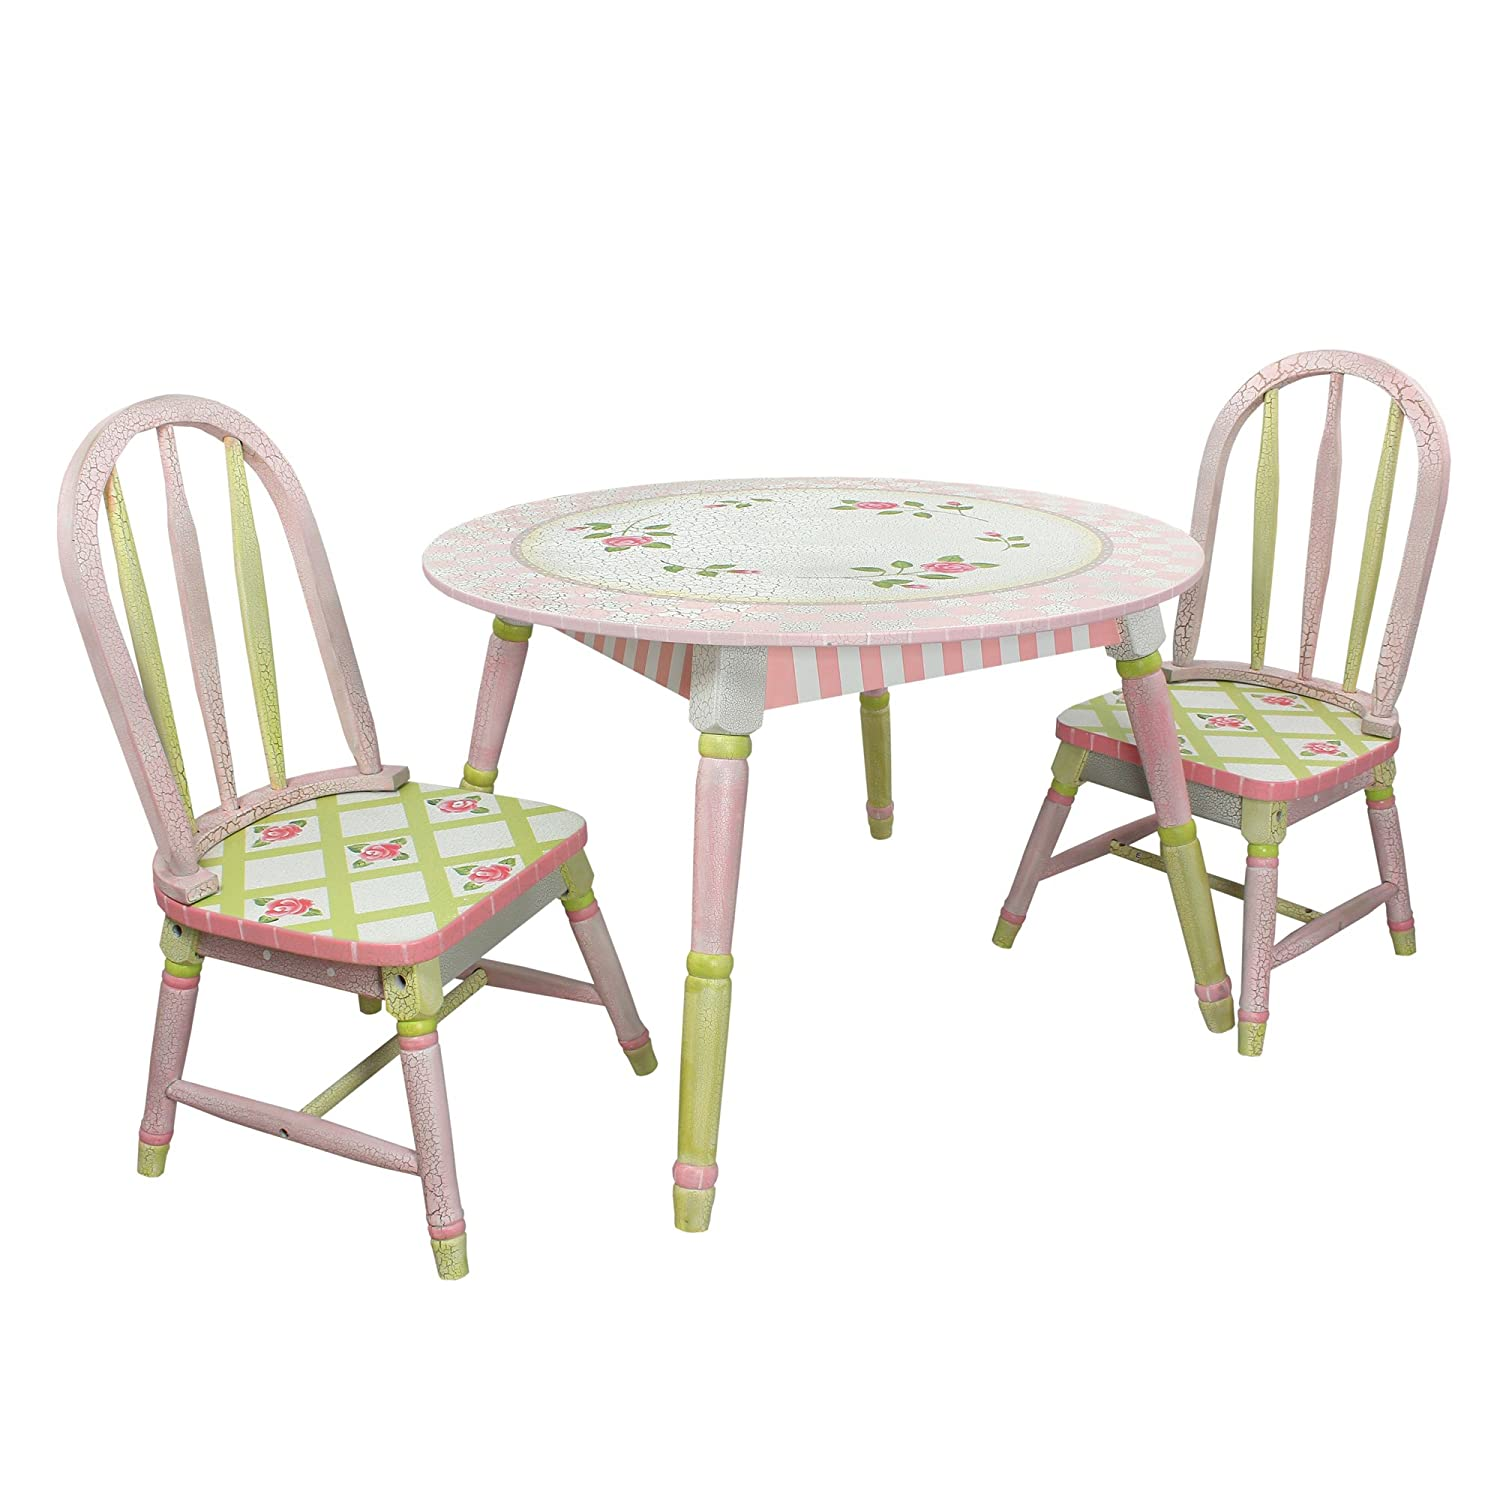 Amazoncom Fantasy Fields Crackled Rose Thematic Hand Crafted Kids - Wayfair kids table and chairs